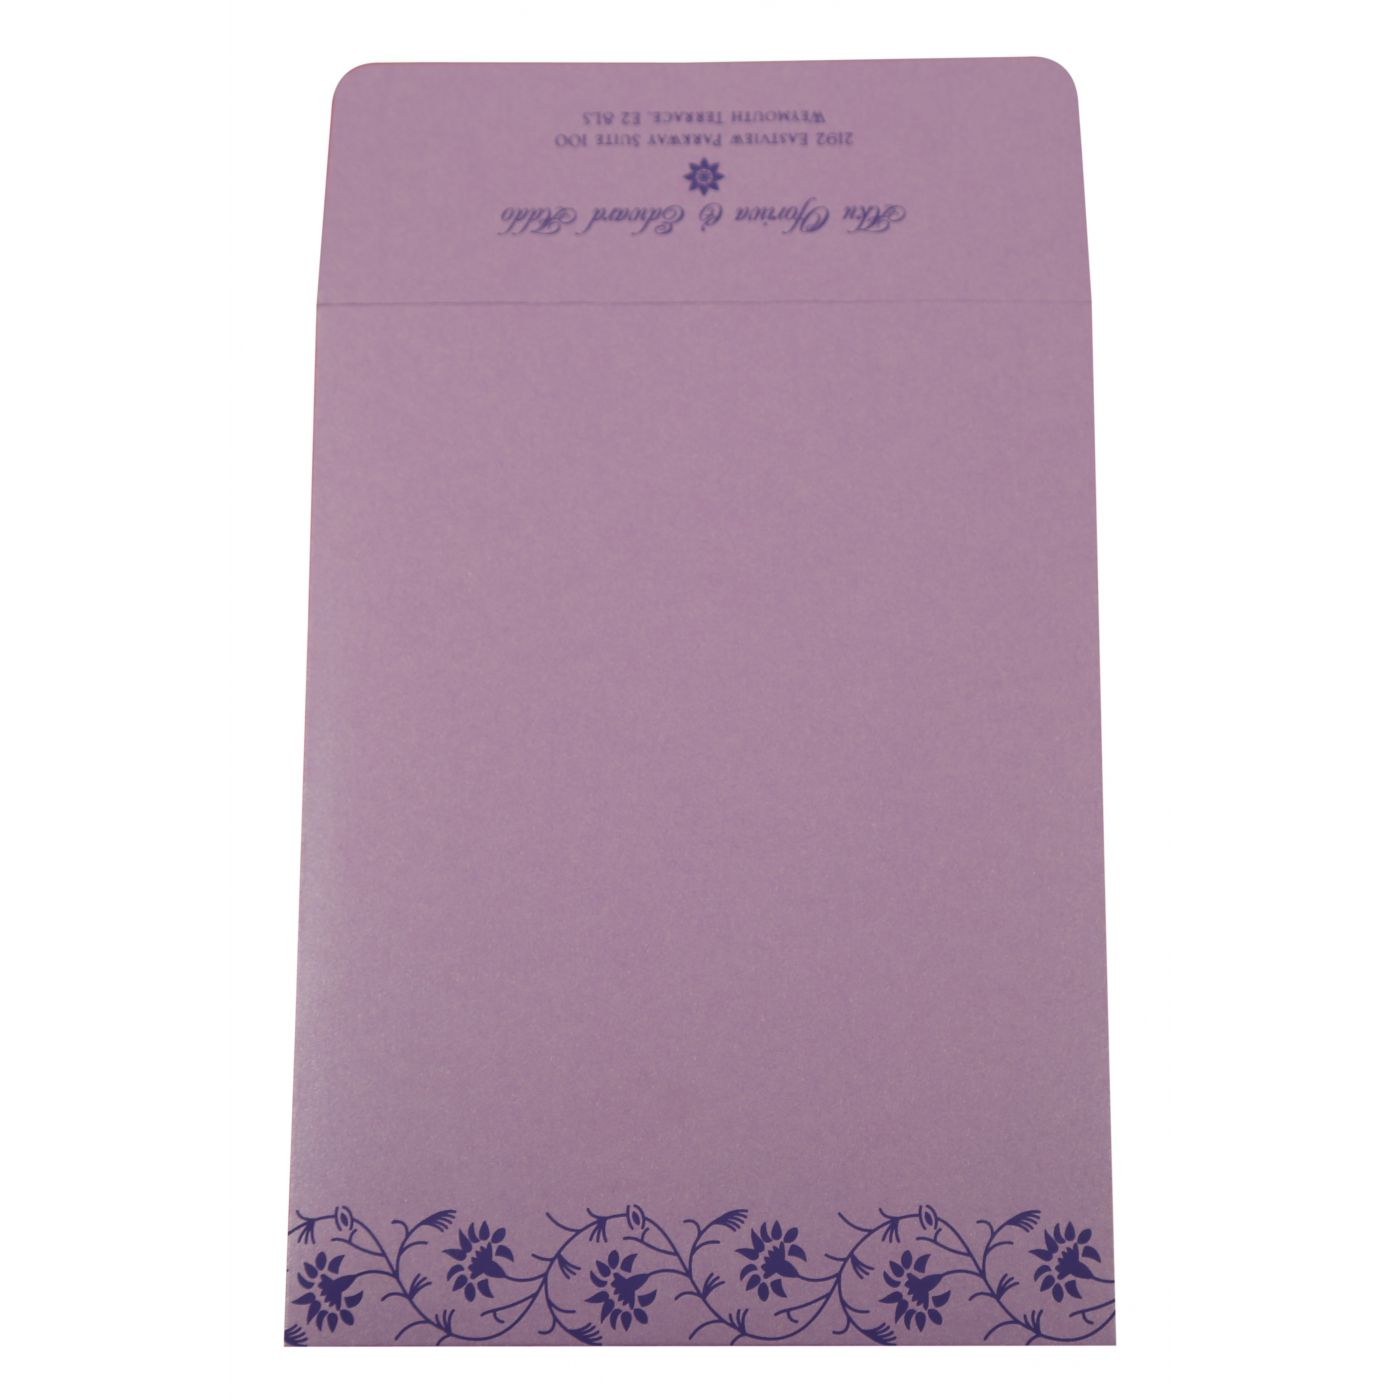 LAVENDER PURPLE SHIMMERY FLORAL THEMED - SCREEN PRINTED WEDDING INVITATION : CSO-822E - IndianWeddingCards